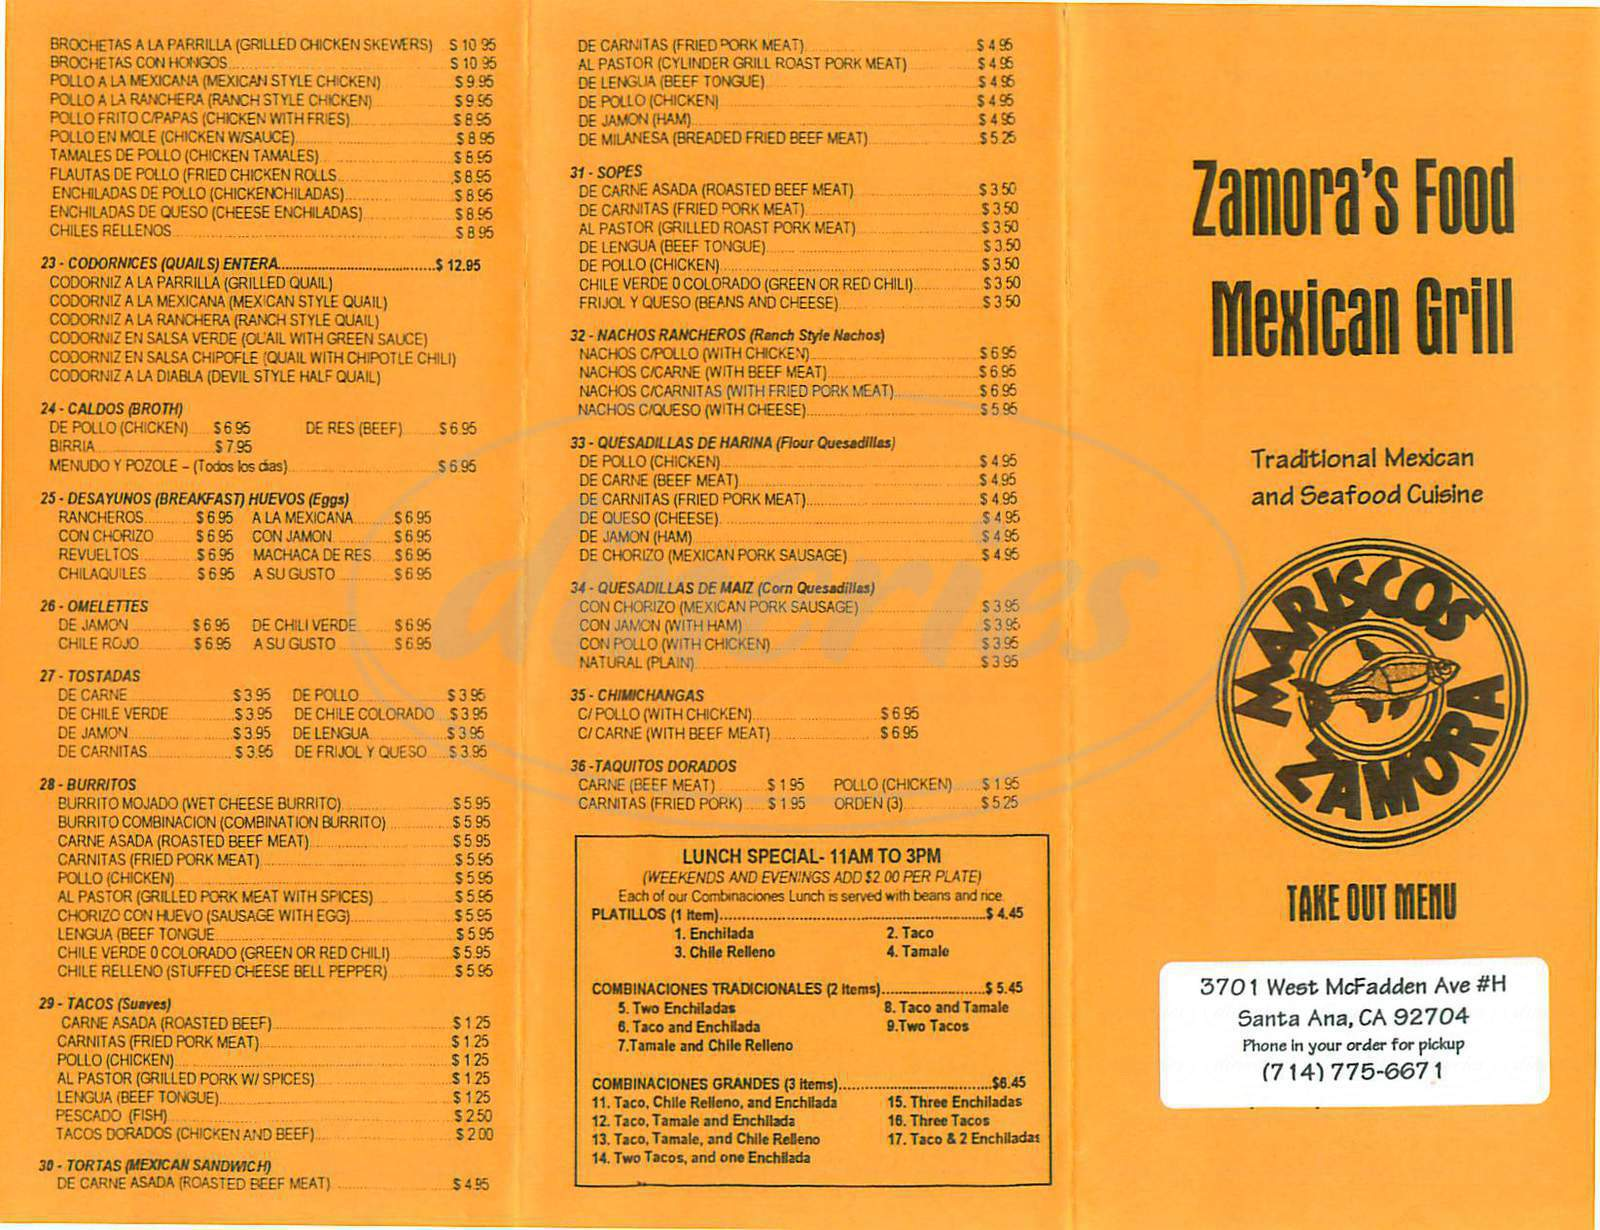 menu for Zamora's Food Mexican Grill